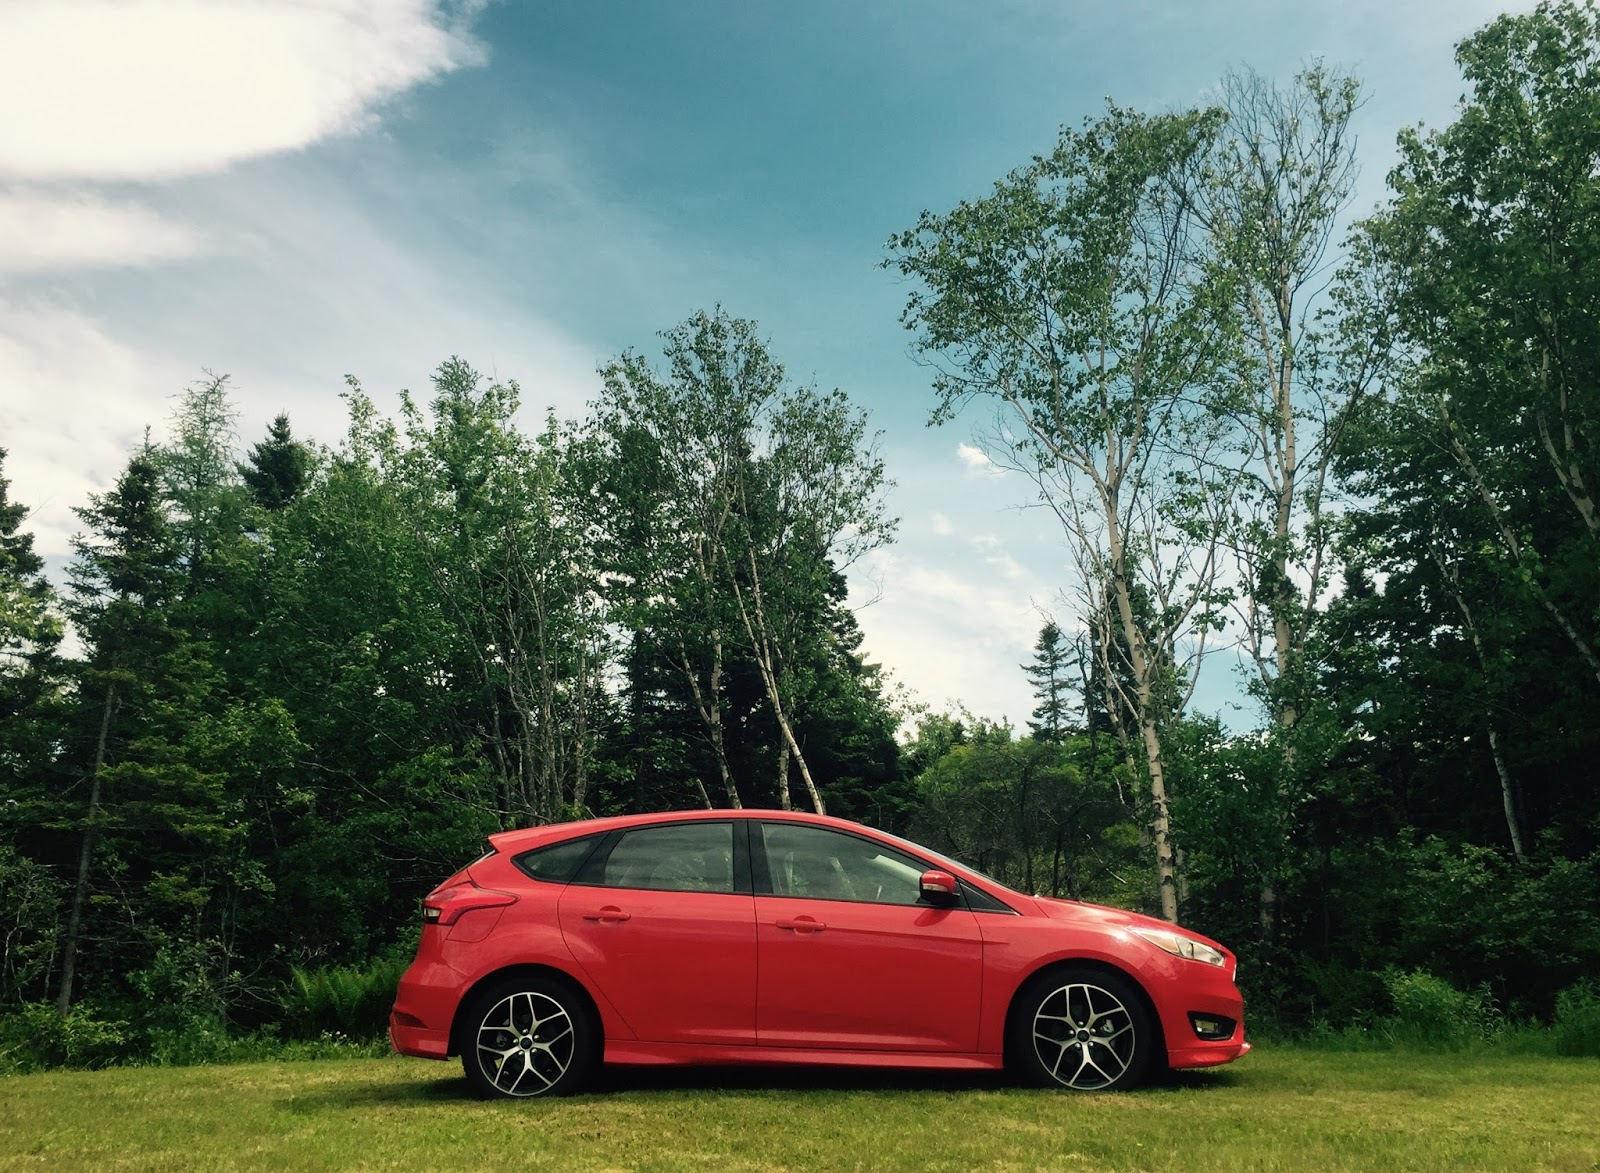 2015 Ford Focus Se Hatchback Review Charming Chassis Continues To Sedan Profile